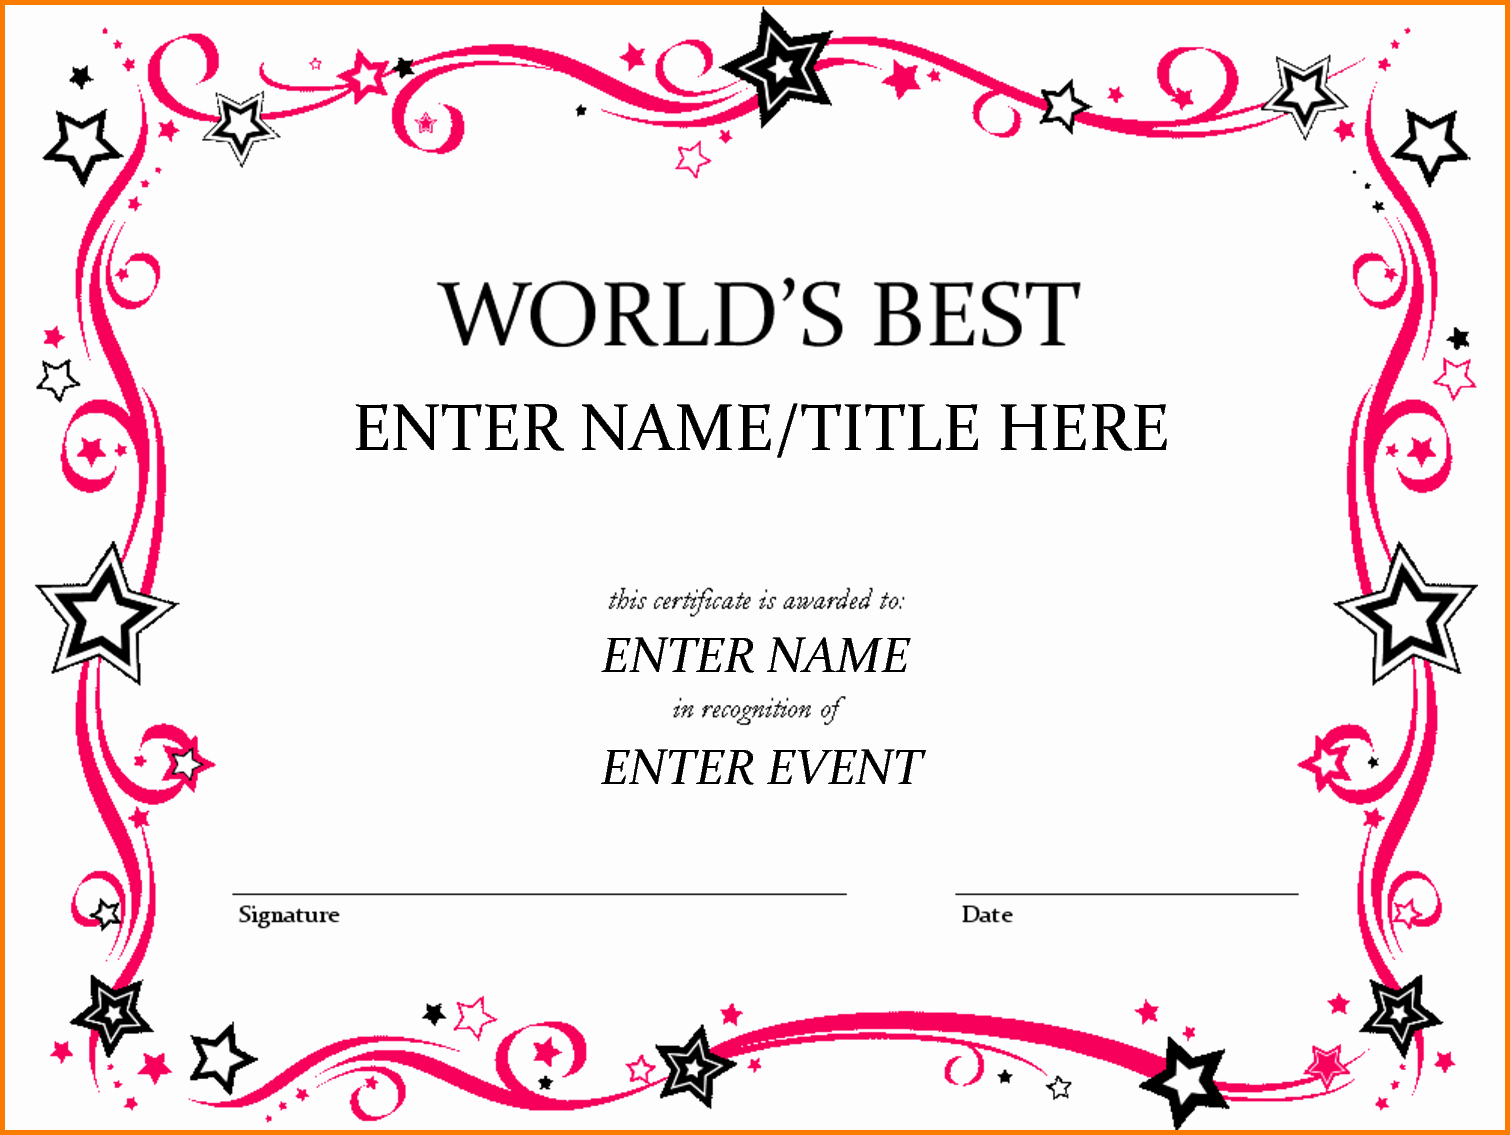 Certificate Of Award Template Free Luxury Award Template Word